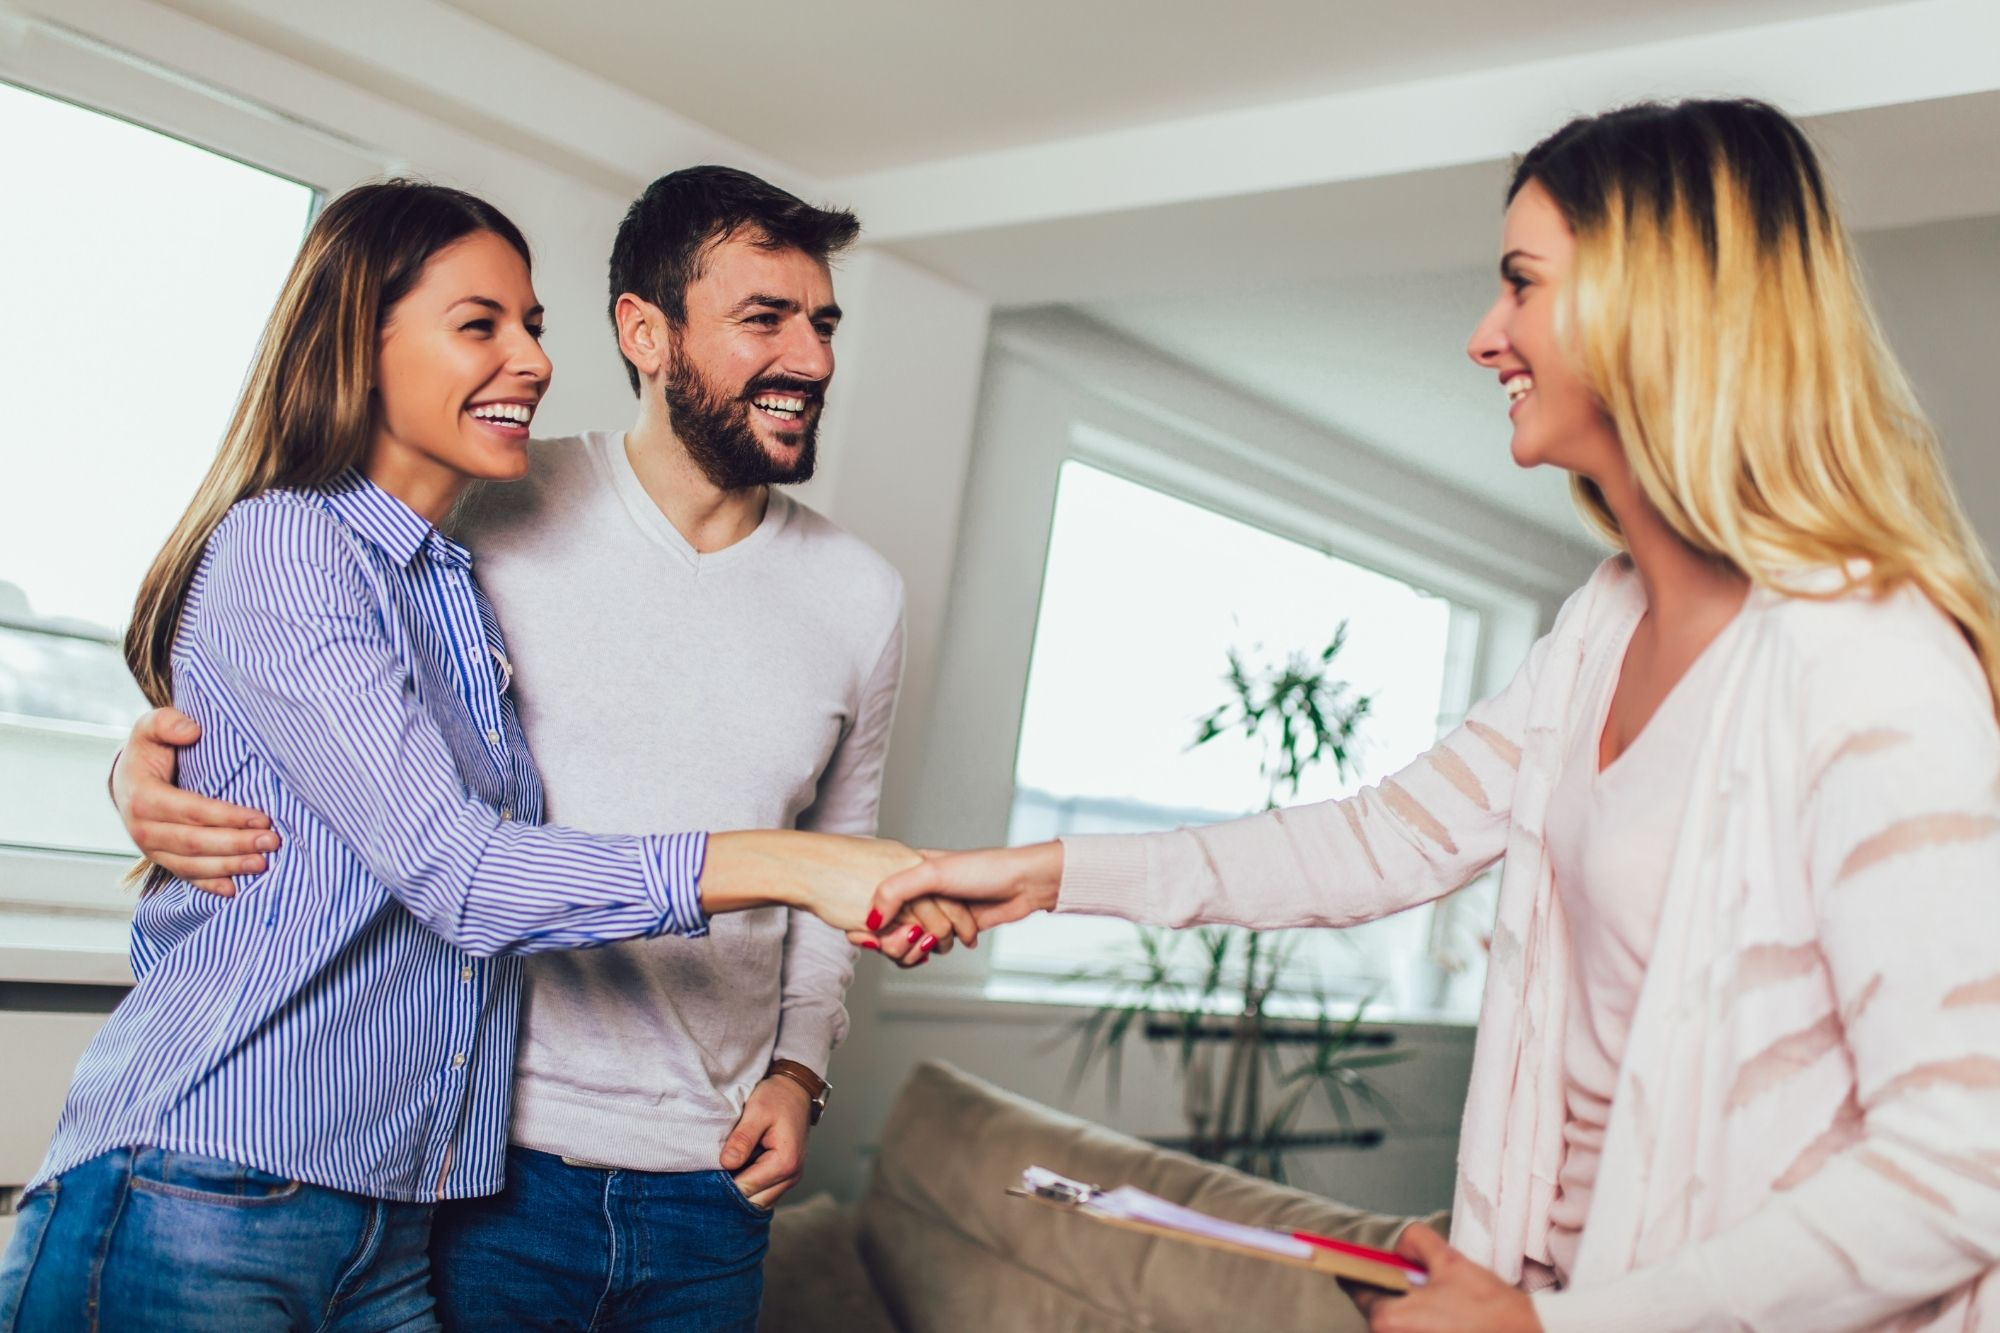 Real estate agent meeting couple clients